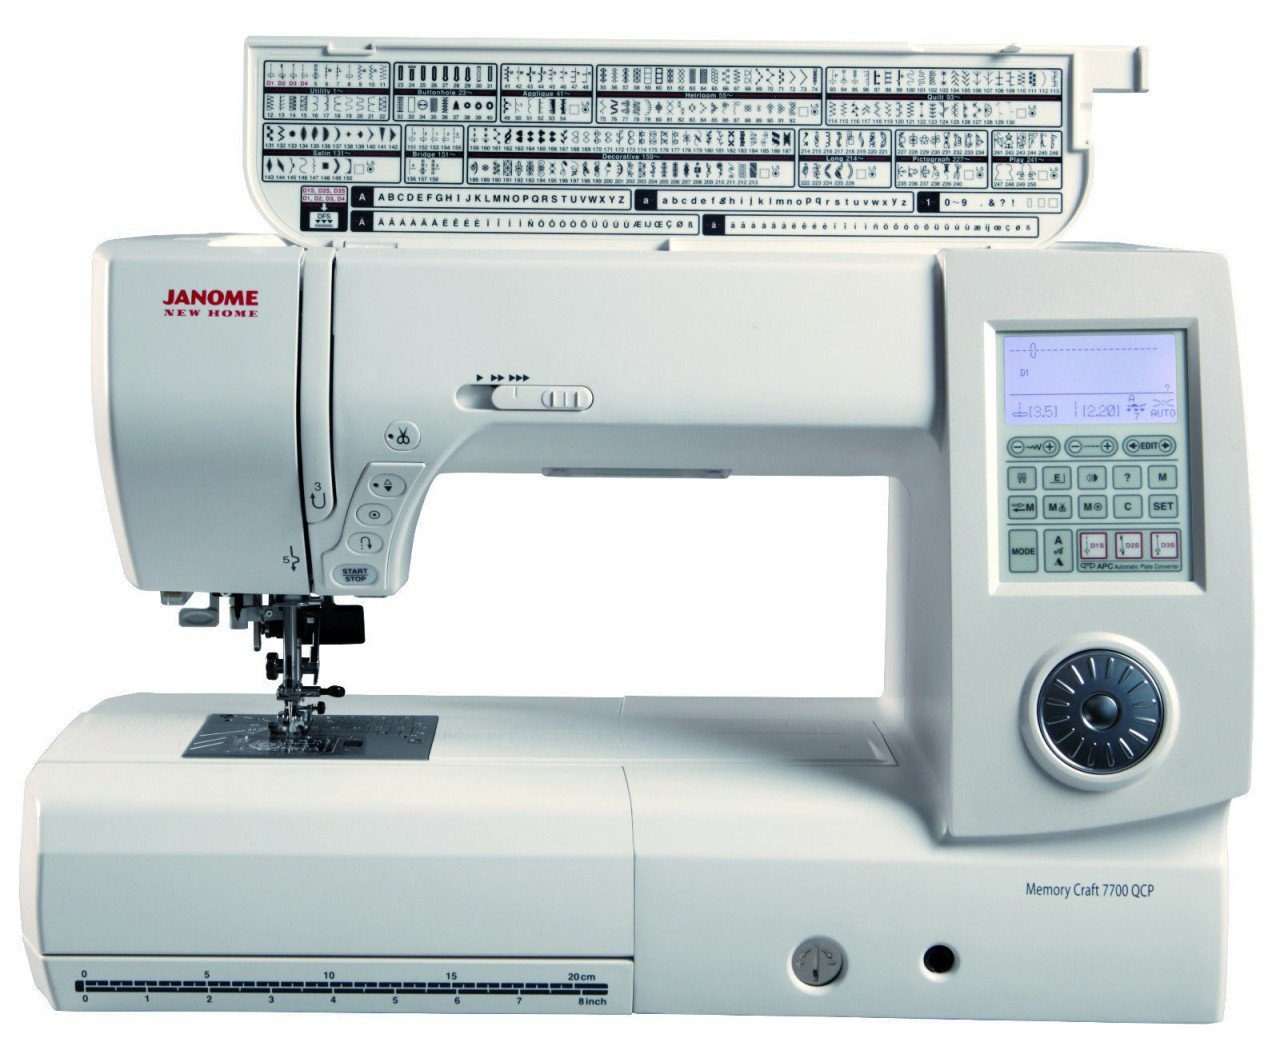 Janome 7700 Sewing and Quilting Machine Review - Quilter's Review : sewing machines for quilting reviews - Adamdwight.com